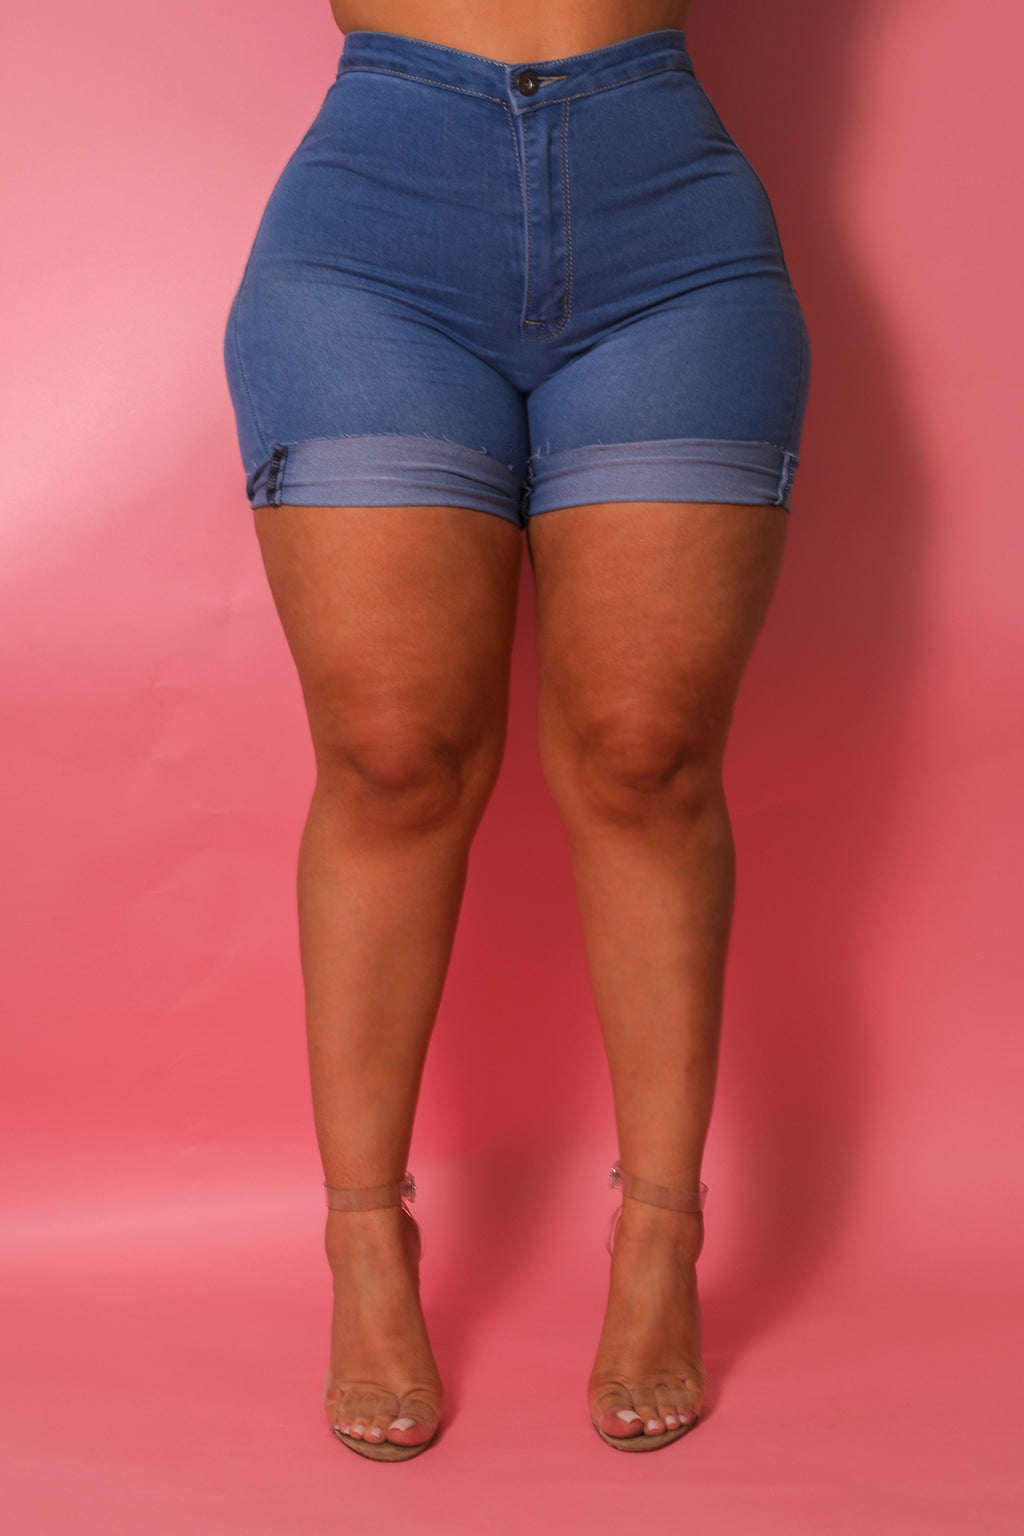 💋Ciera's FAV- Zoe Curvy Short (available in Plus) - Babes And Felines | Specializing in Fashionable Staple Pieces for Every Shape and Size